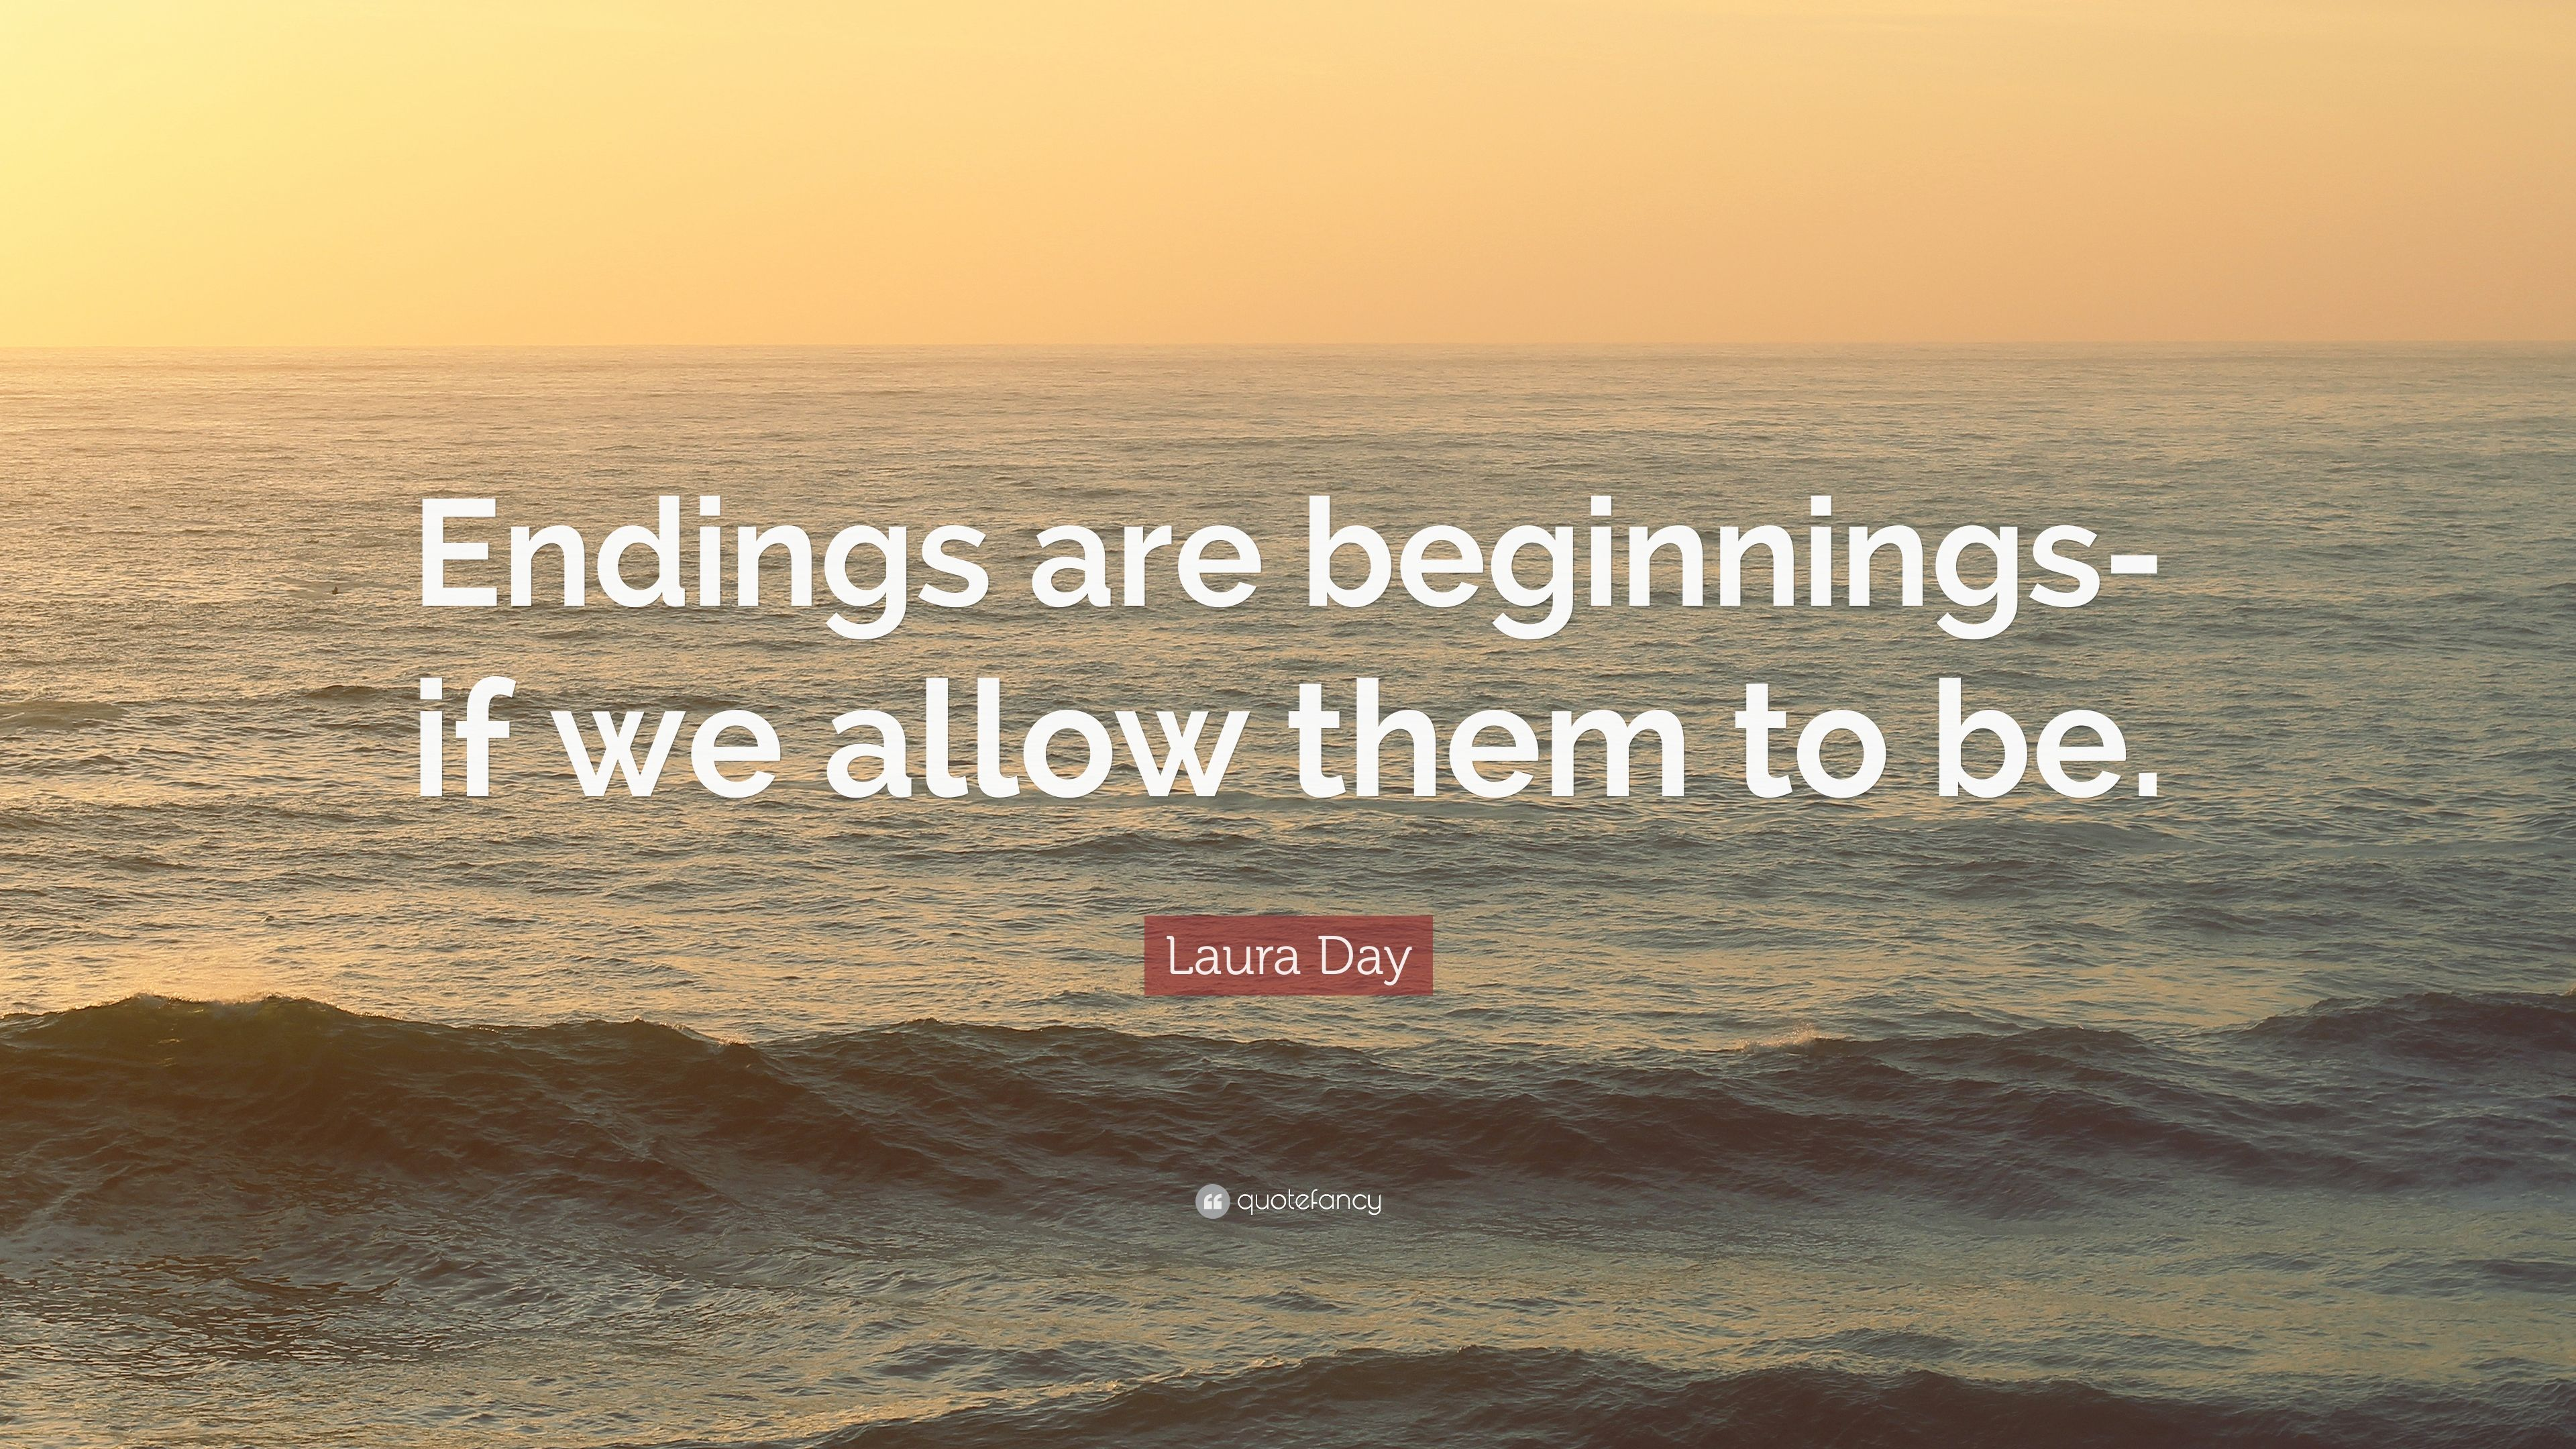 Perfect Laura Day Quote: U201cEndings Are Beginnings If We Allow Them To Be.